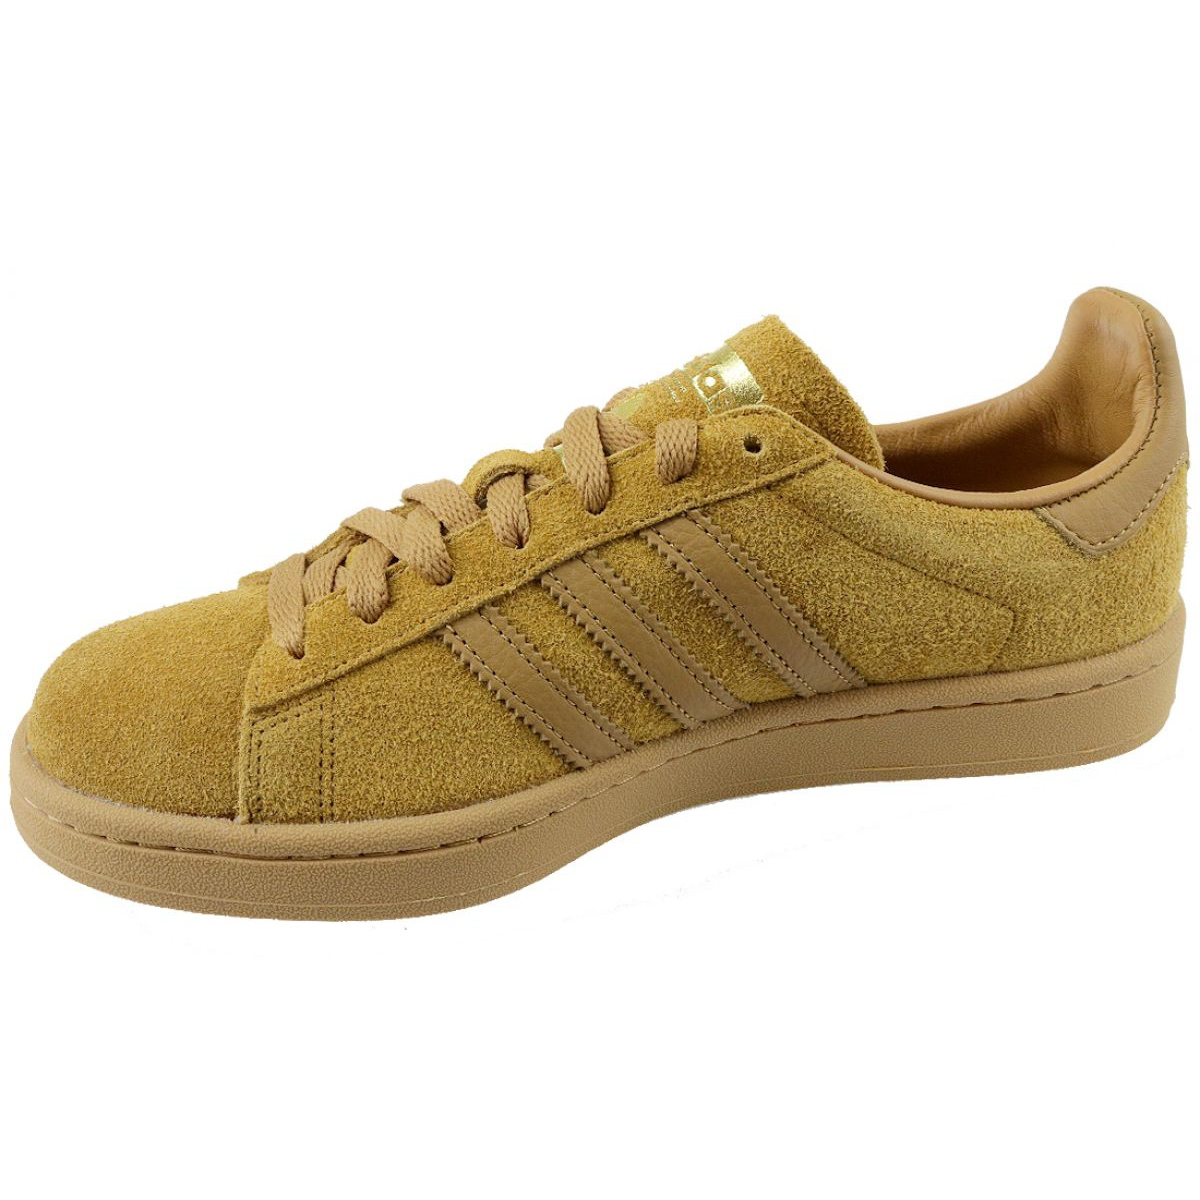 Adidas Campus M CQ2046 shoes brown - ButyModne.pl